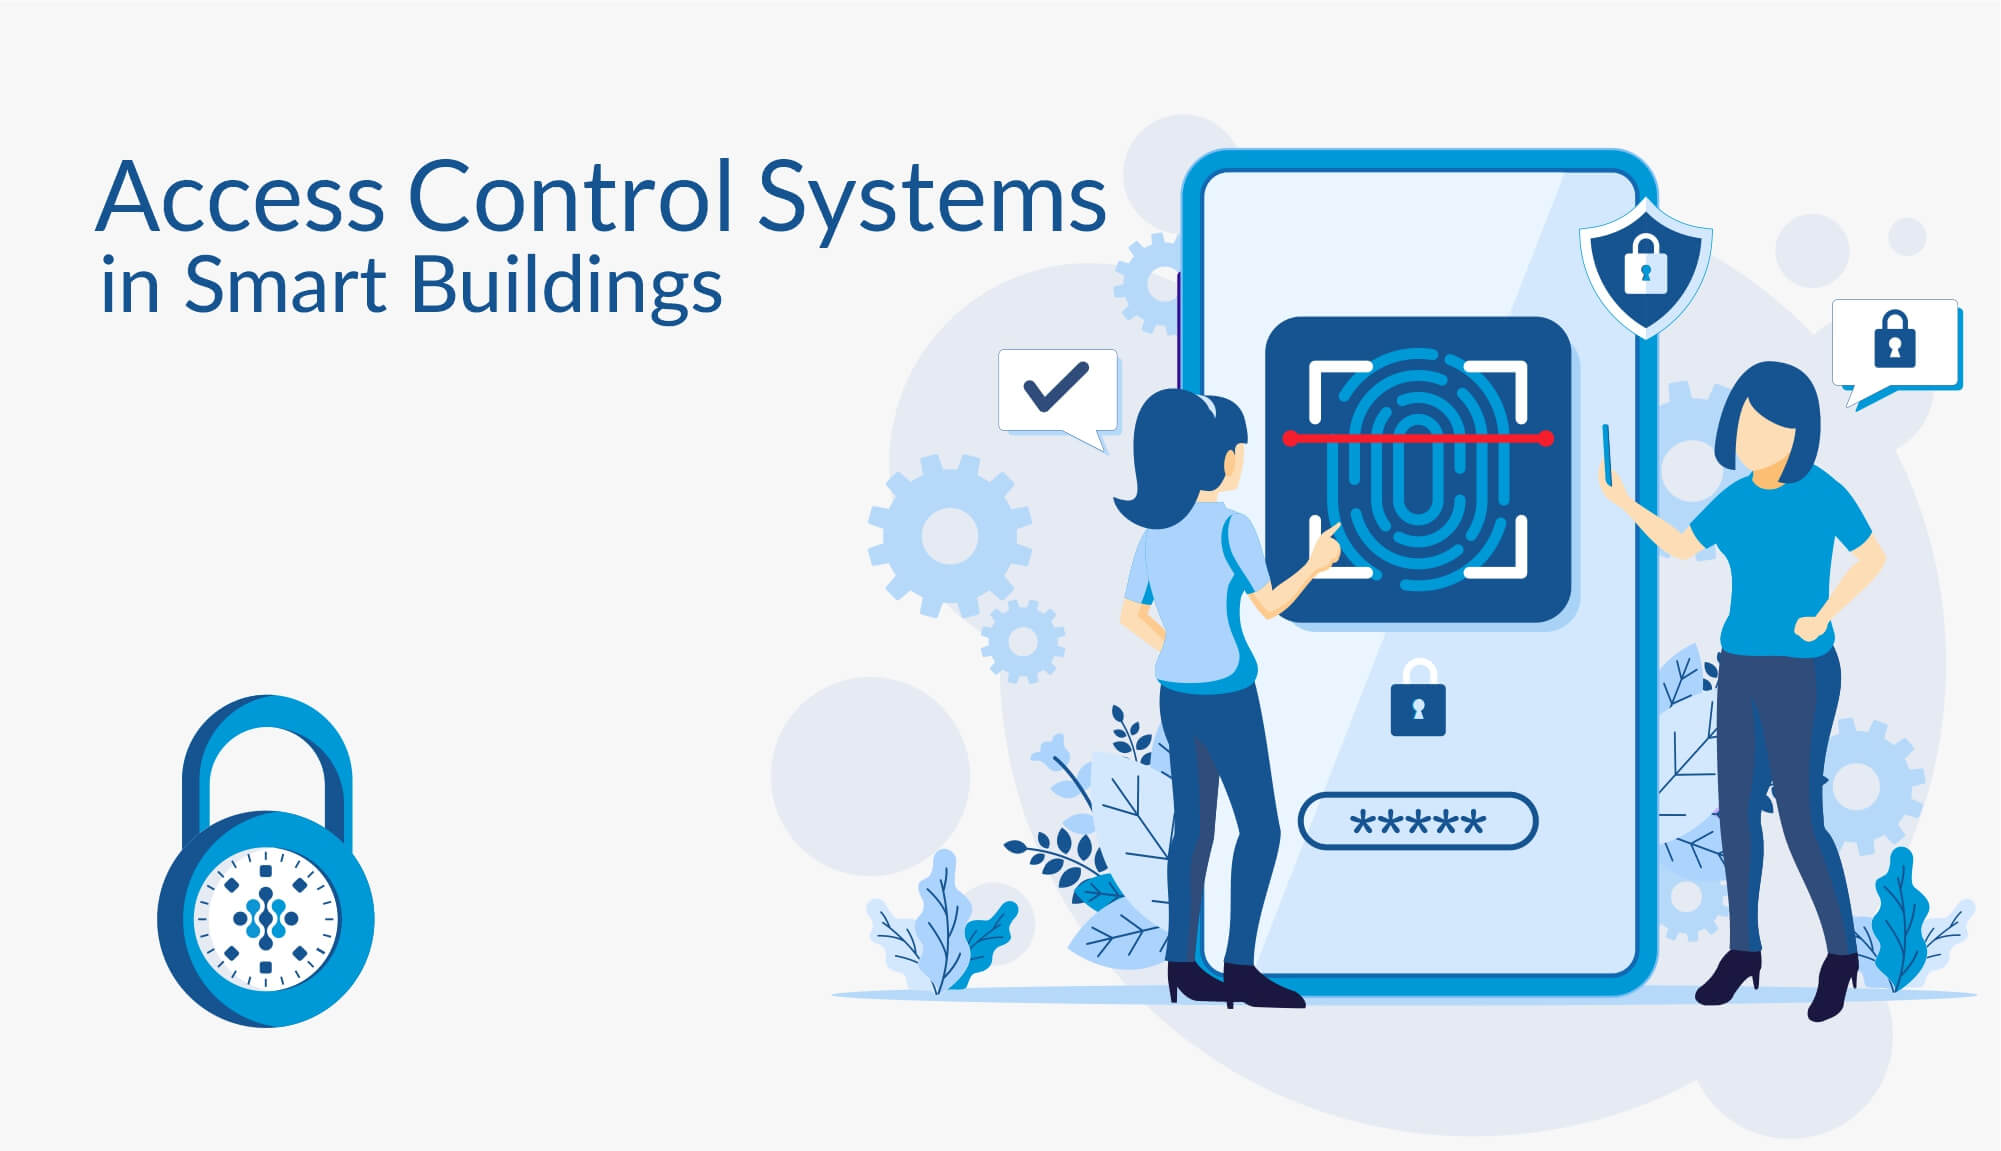 Access Control Systems in Smart Buildings